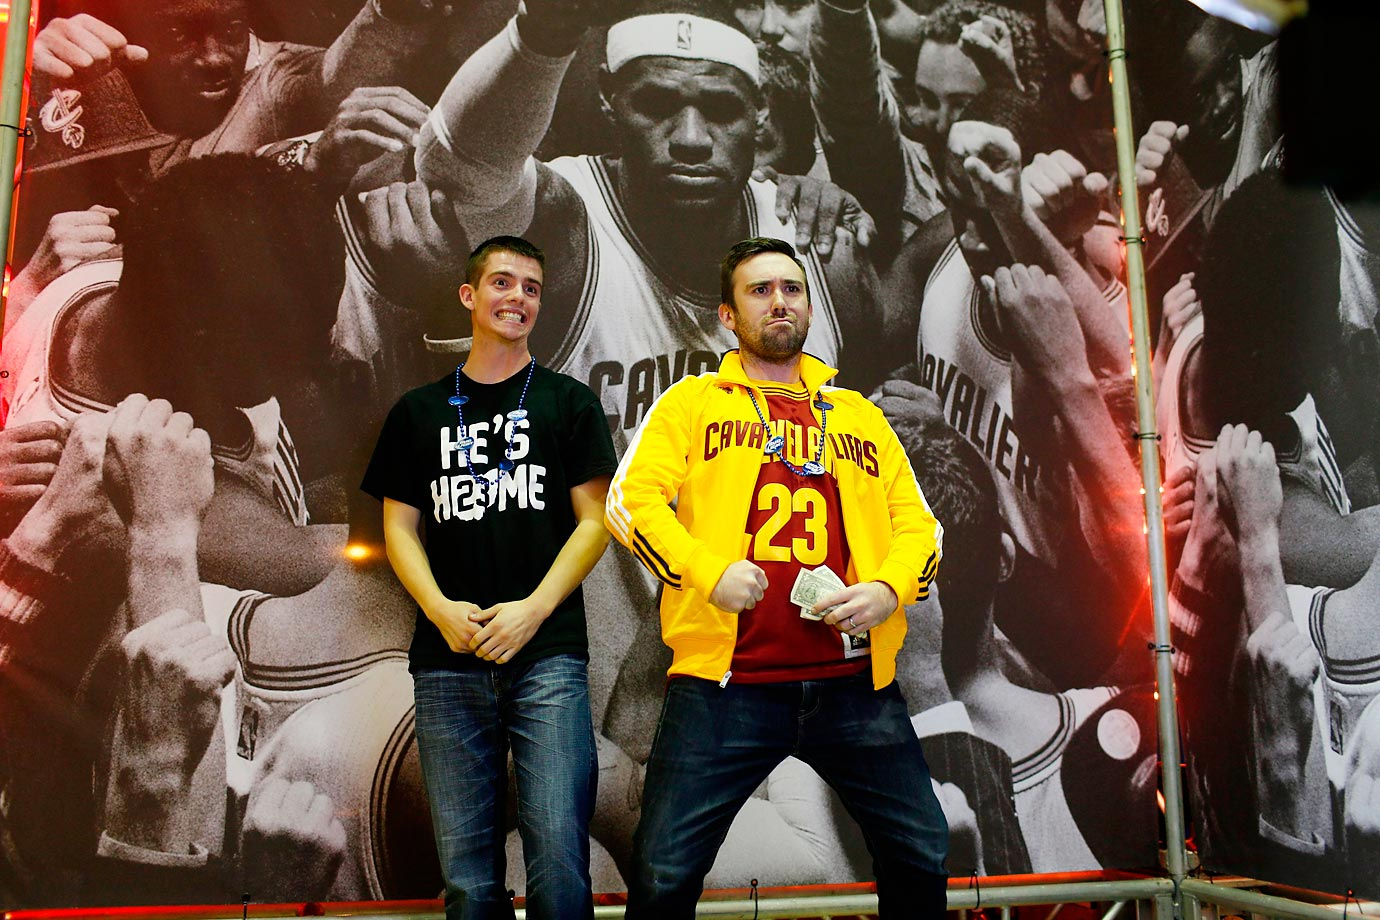 In honor of LeBron James' return to Cleveland, SI went behind the scenes at Quickens Loan Arena and downtown Cleveland to capture the excitement.